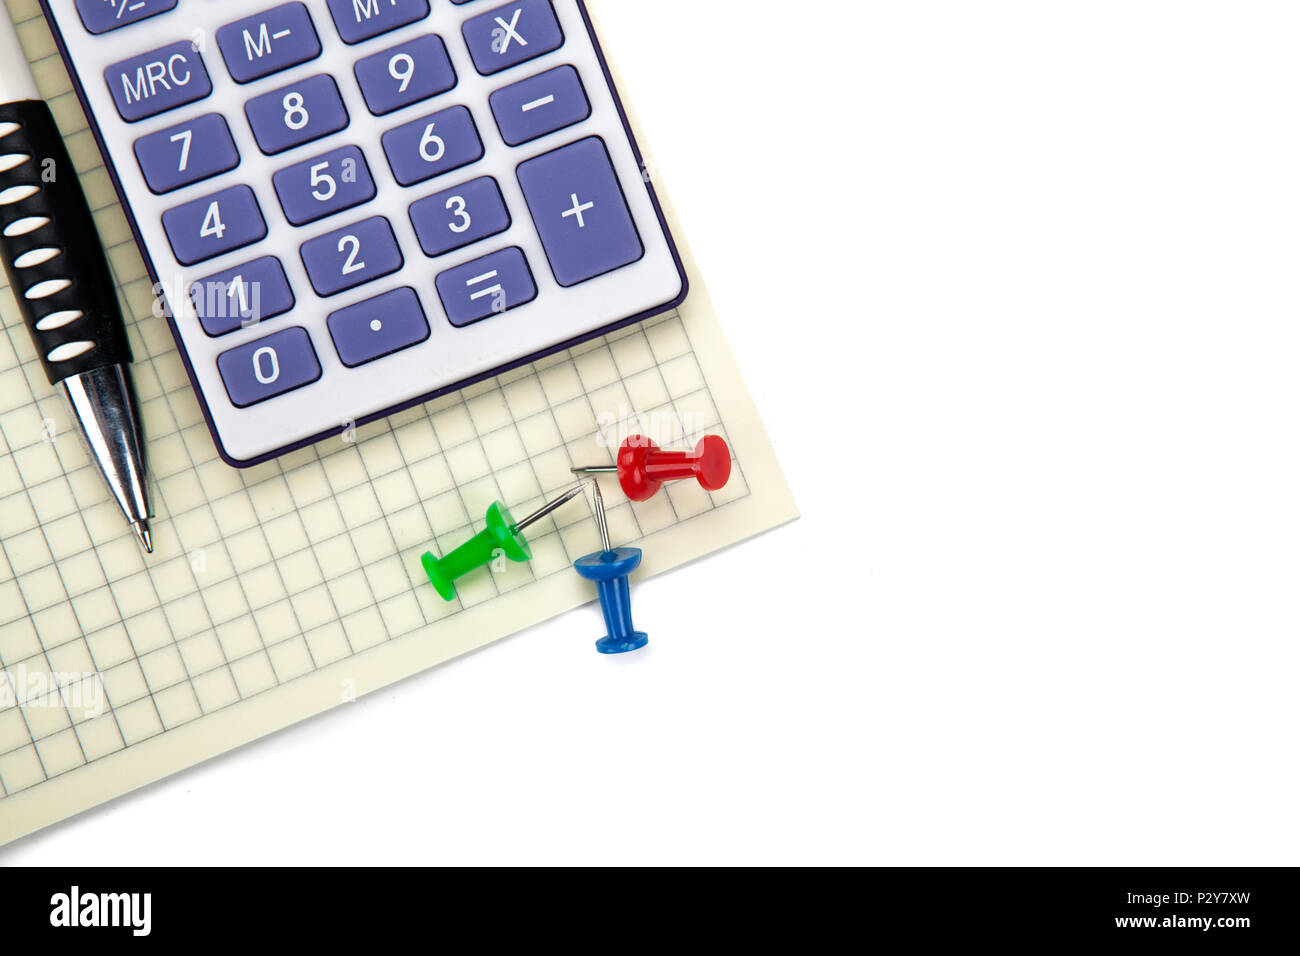 One big calculator and stationery on a white table closeup - Stock Image